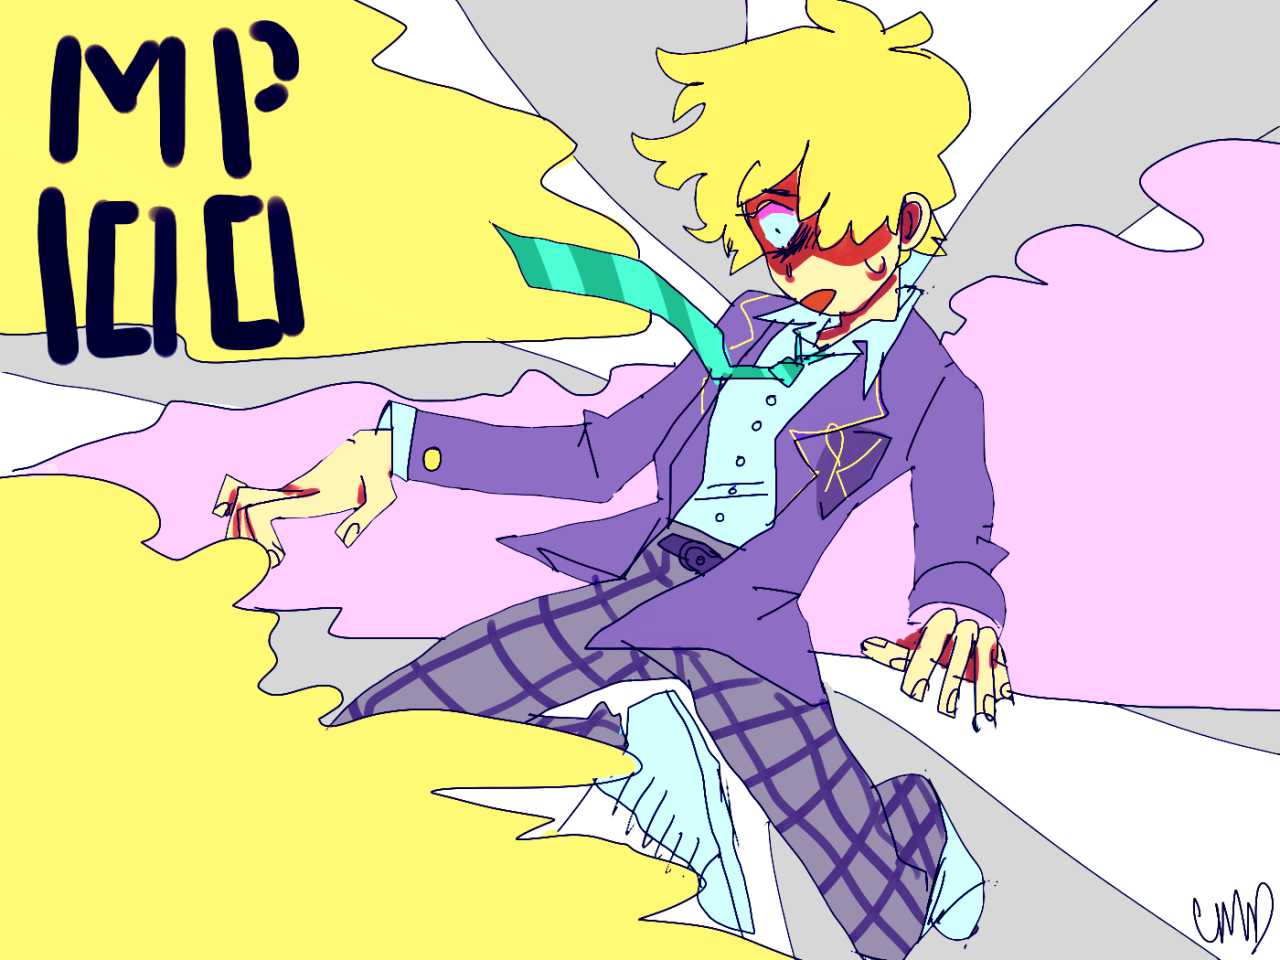 Pin By Uyanga The Artist On Mp100 Mob Psycho 100 Mob Psycho Basic Drawing